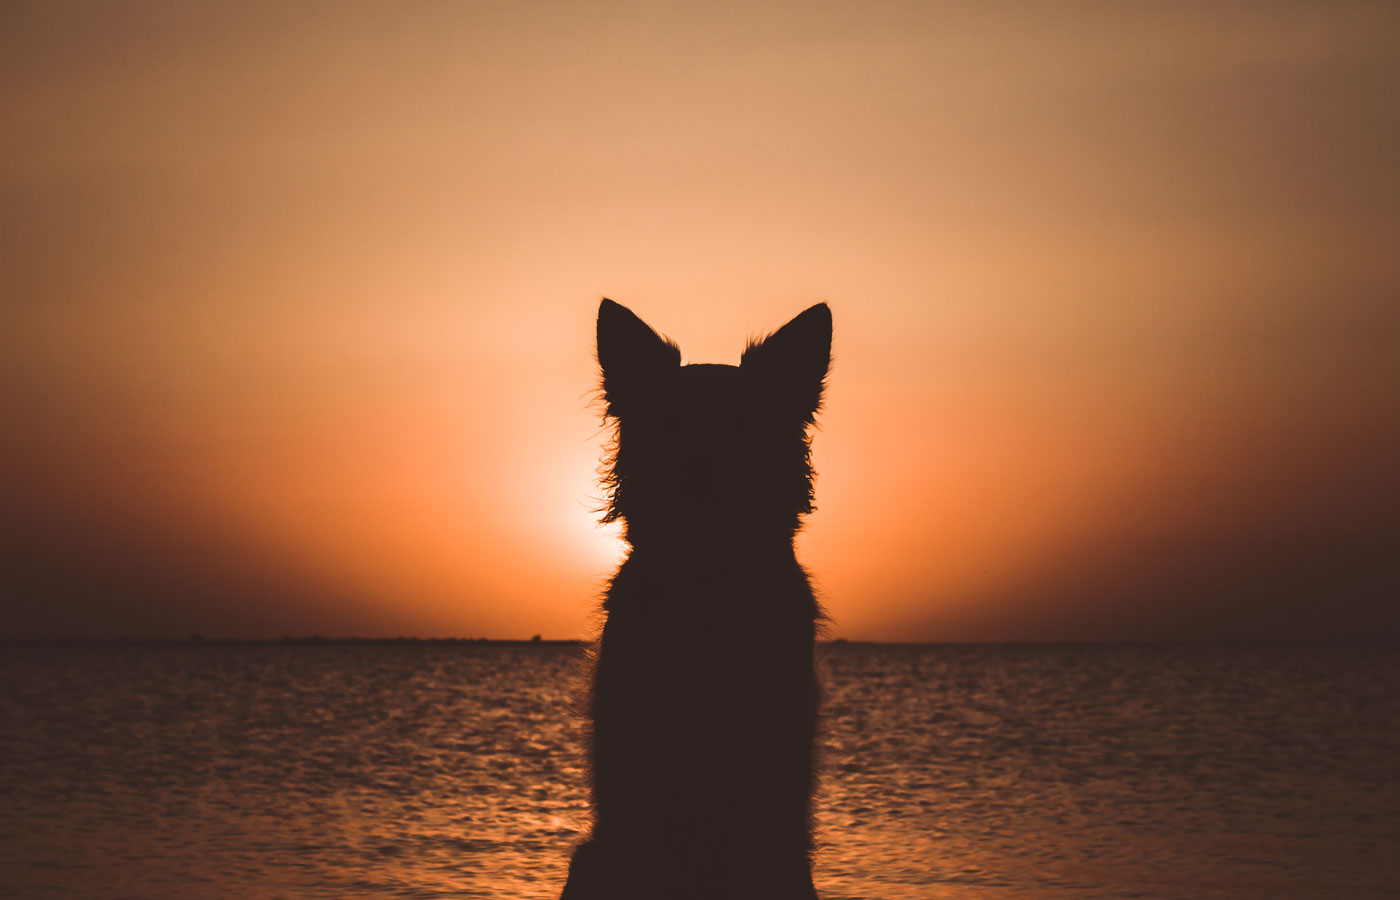 Silhouette of a white berger shepherd dog. Dog sits and looks at beautiful golden sunset (sunrise) near the ocean.